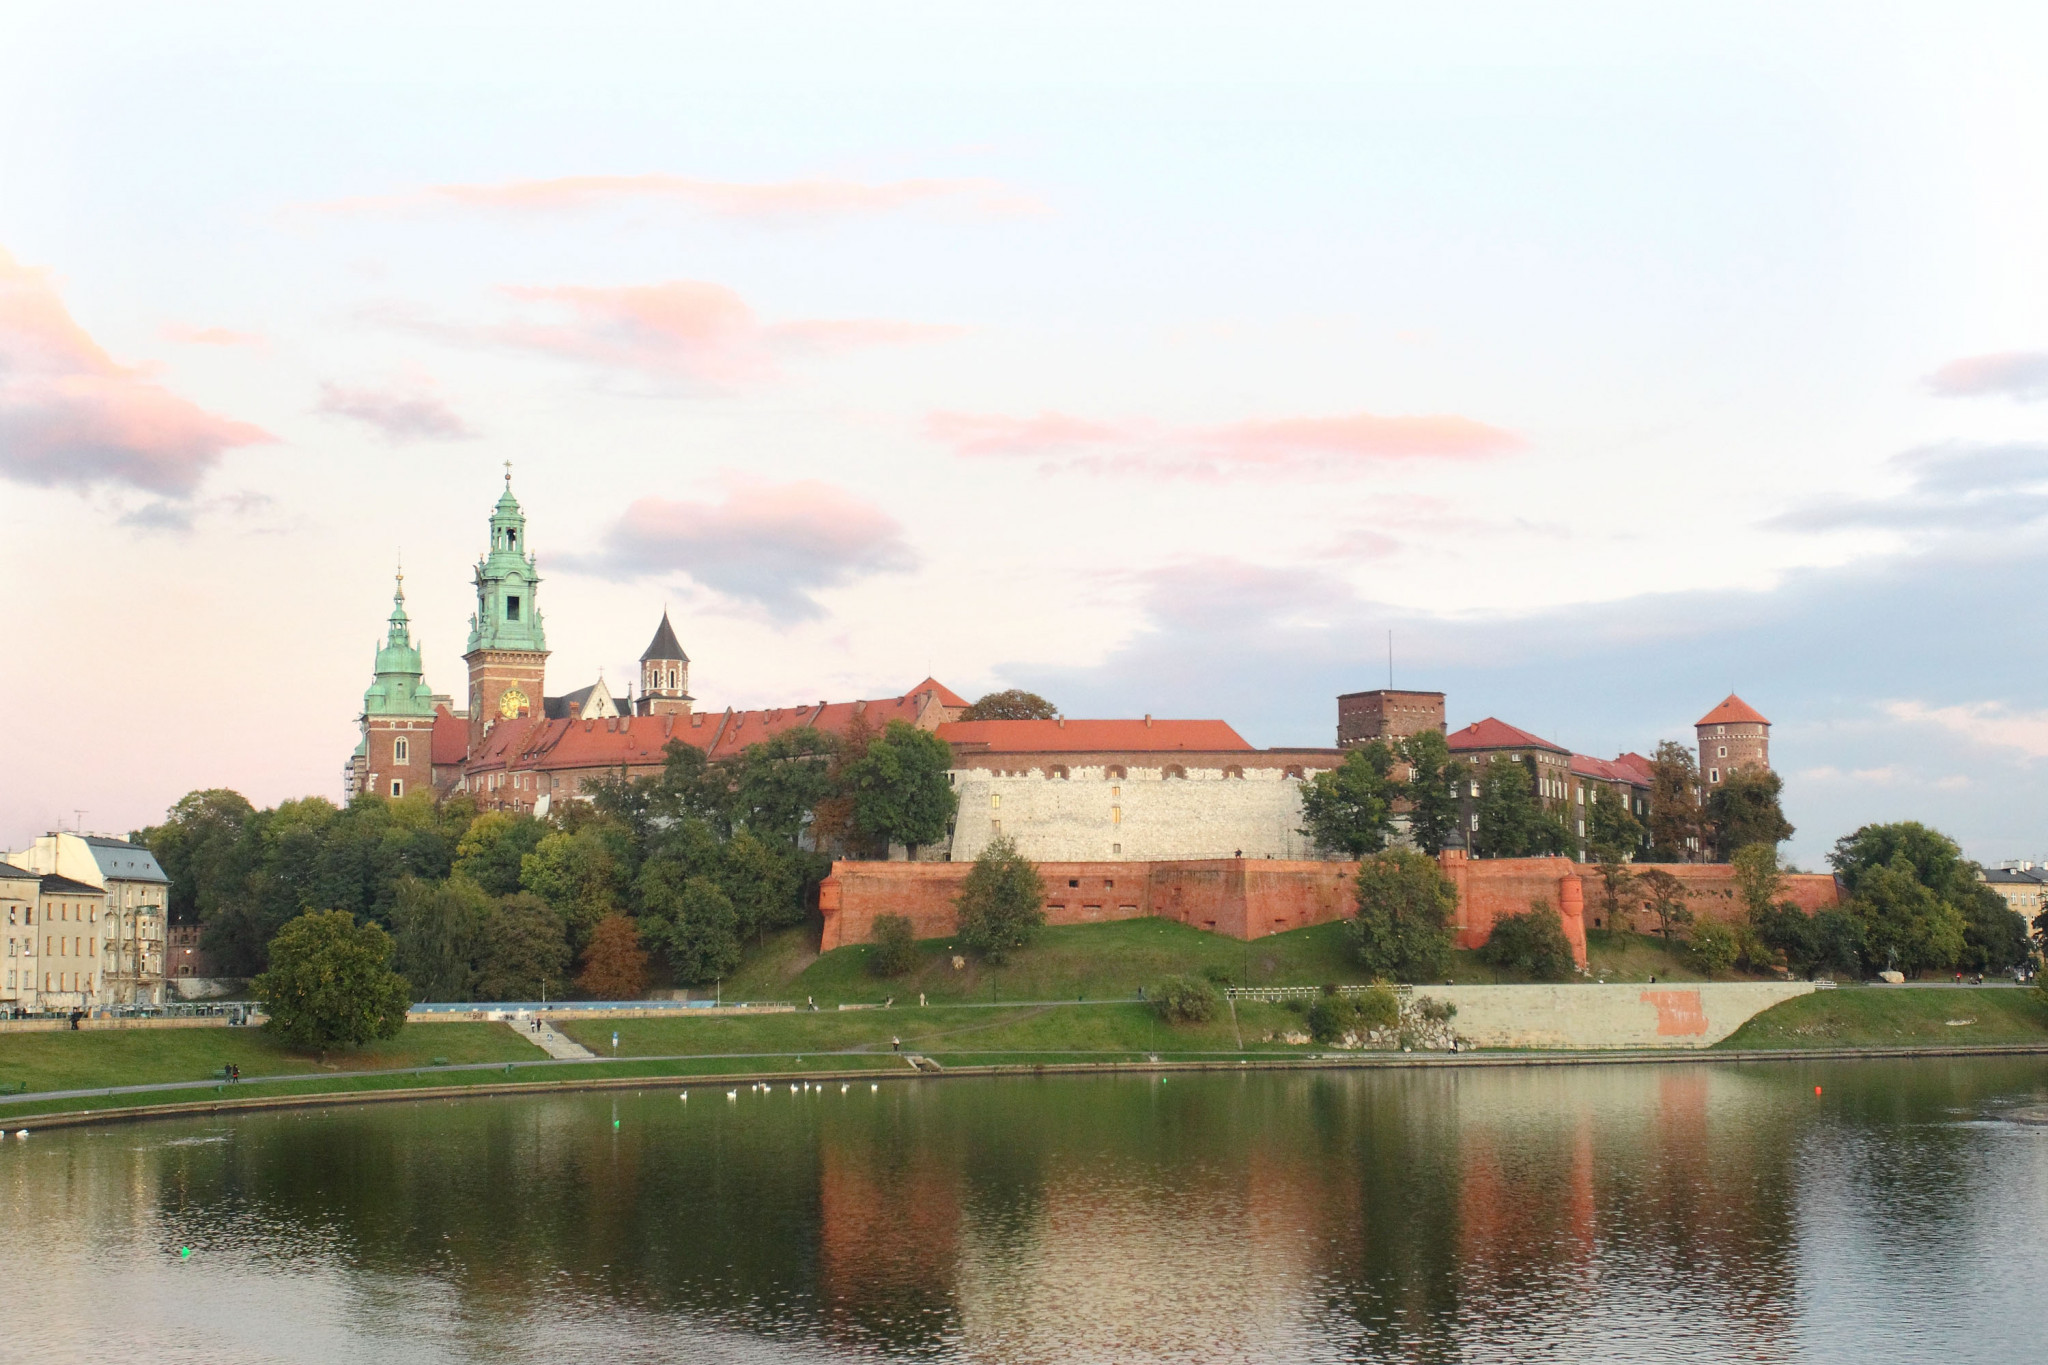 Kraków aims for European Green Capital status in 2023 to match hosting of European Games